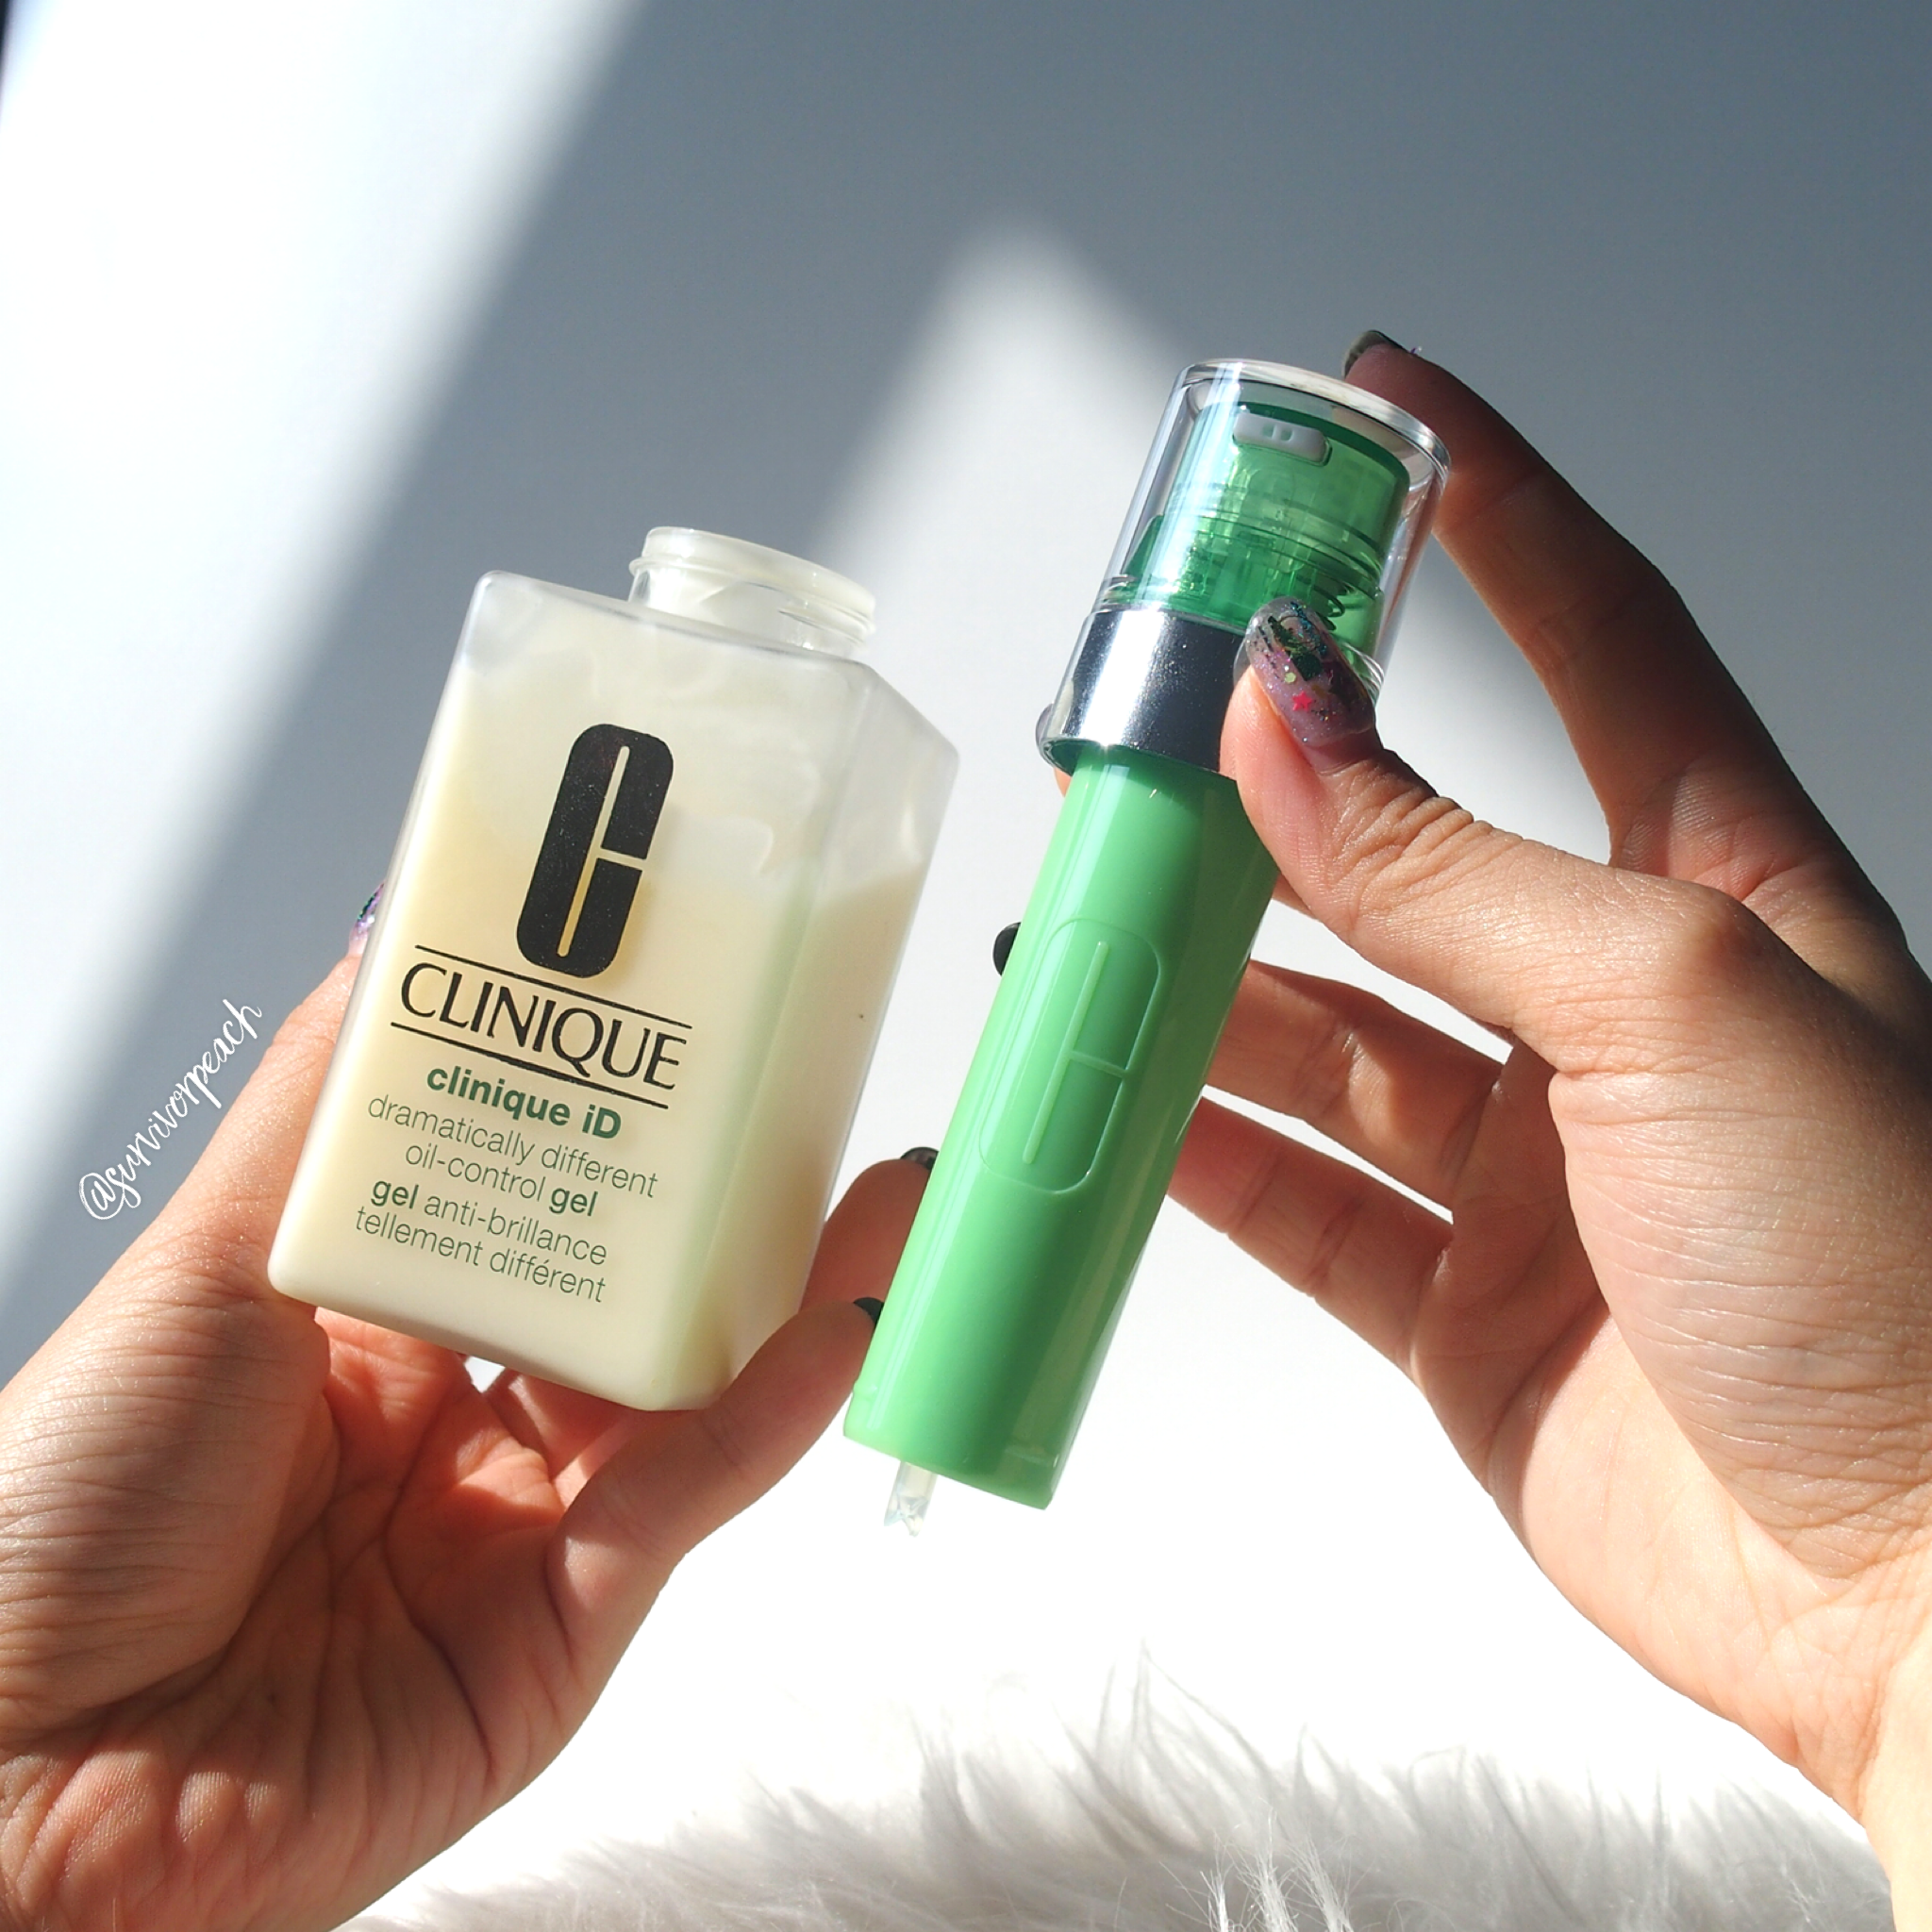 Clinique ID Oil Control Gel + Active Cartridge Concentrate for Irritation